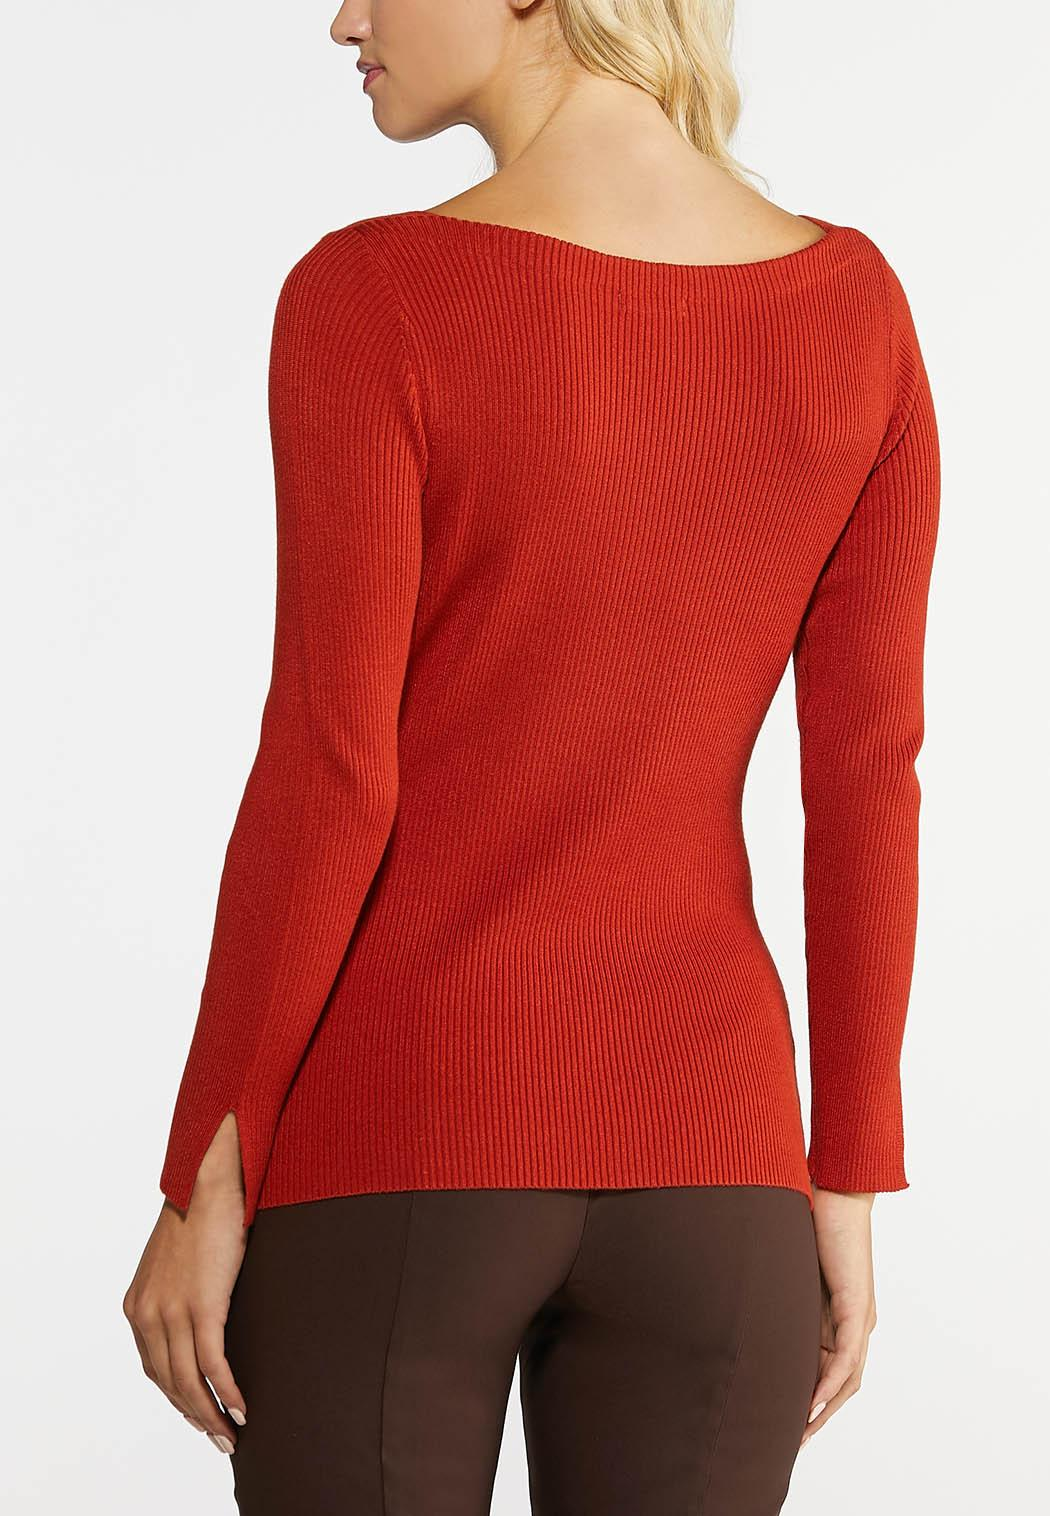 Plus Size Ribbed Pullover Top (Item #43985990)